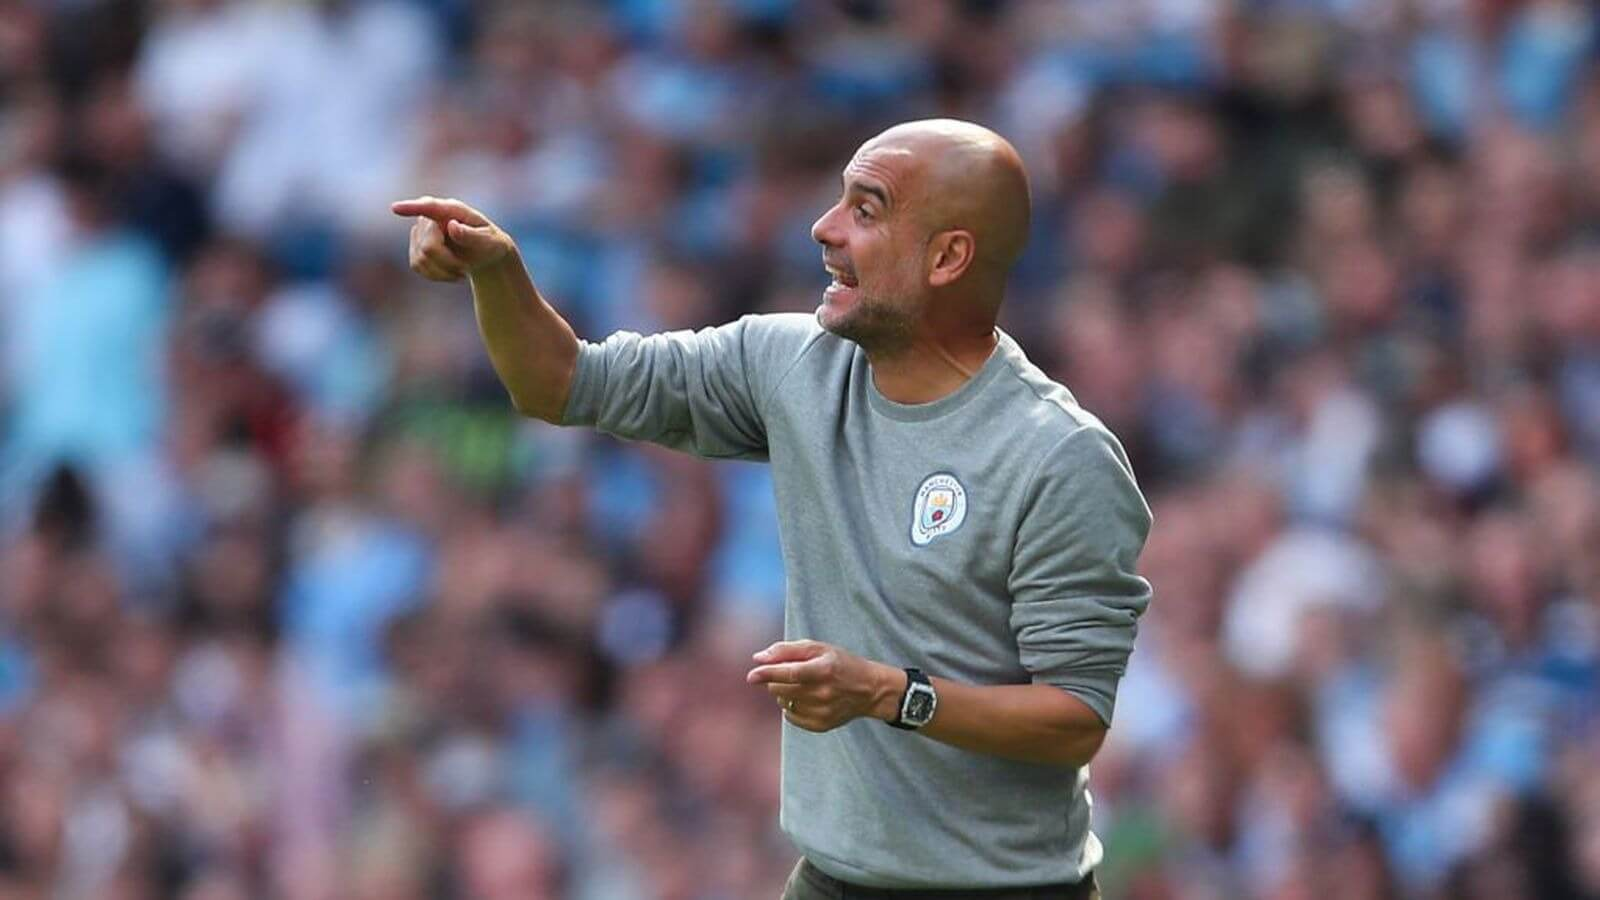 Man City coach Guardiola will use academy youngsters in 21-22 EFL Cup